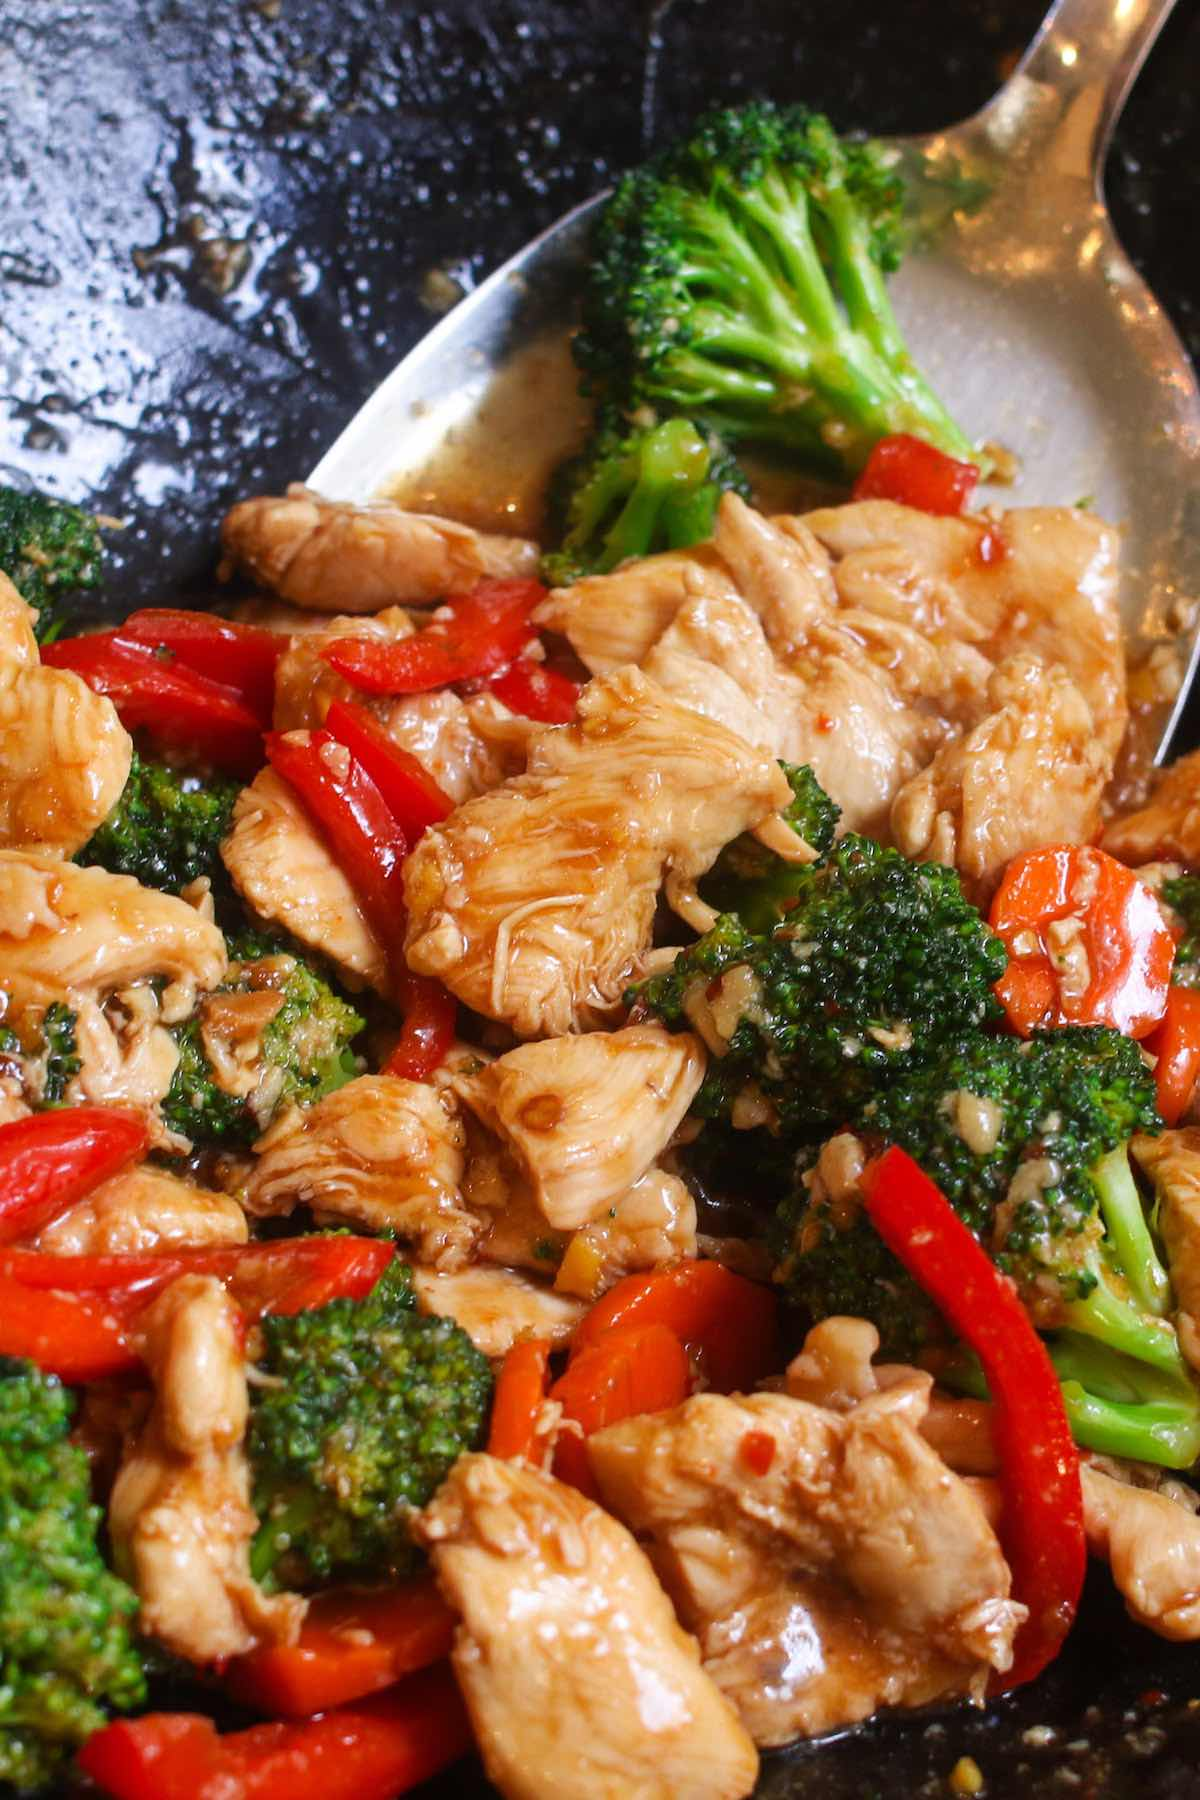 Closeup of Hunan chicken in a wok before serving showing juicy slices of chicken with broccoli, carrots and red bell pepper in a spicy hunan sauce